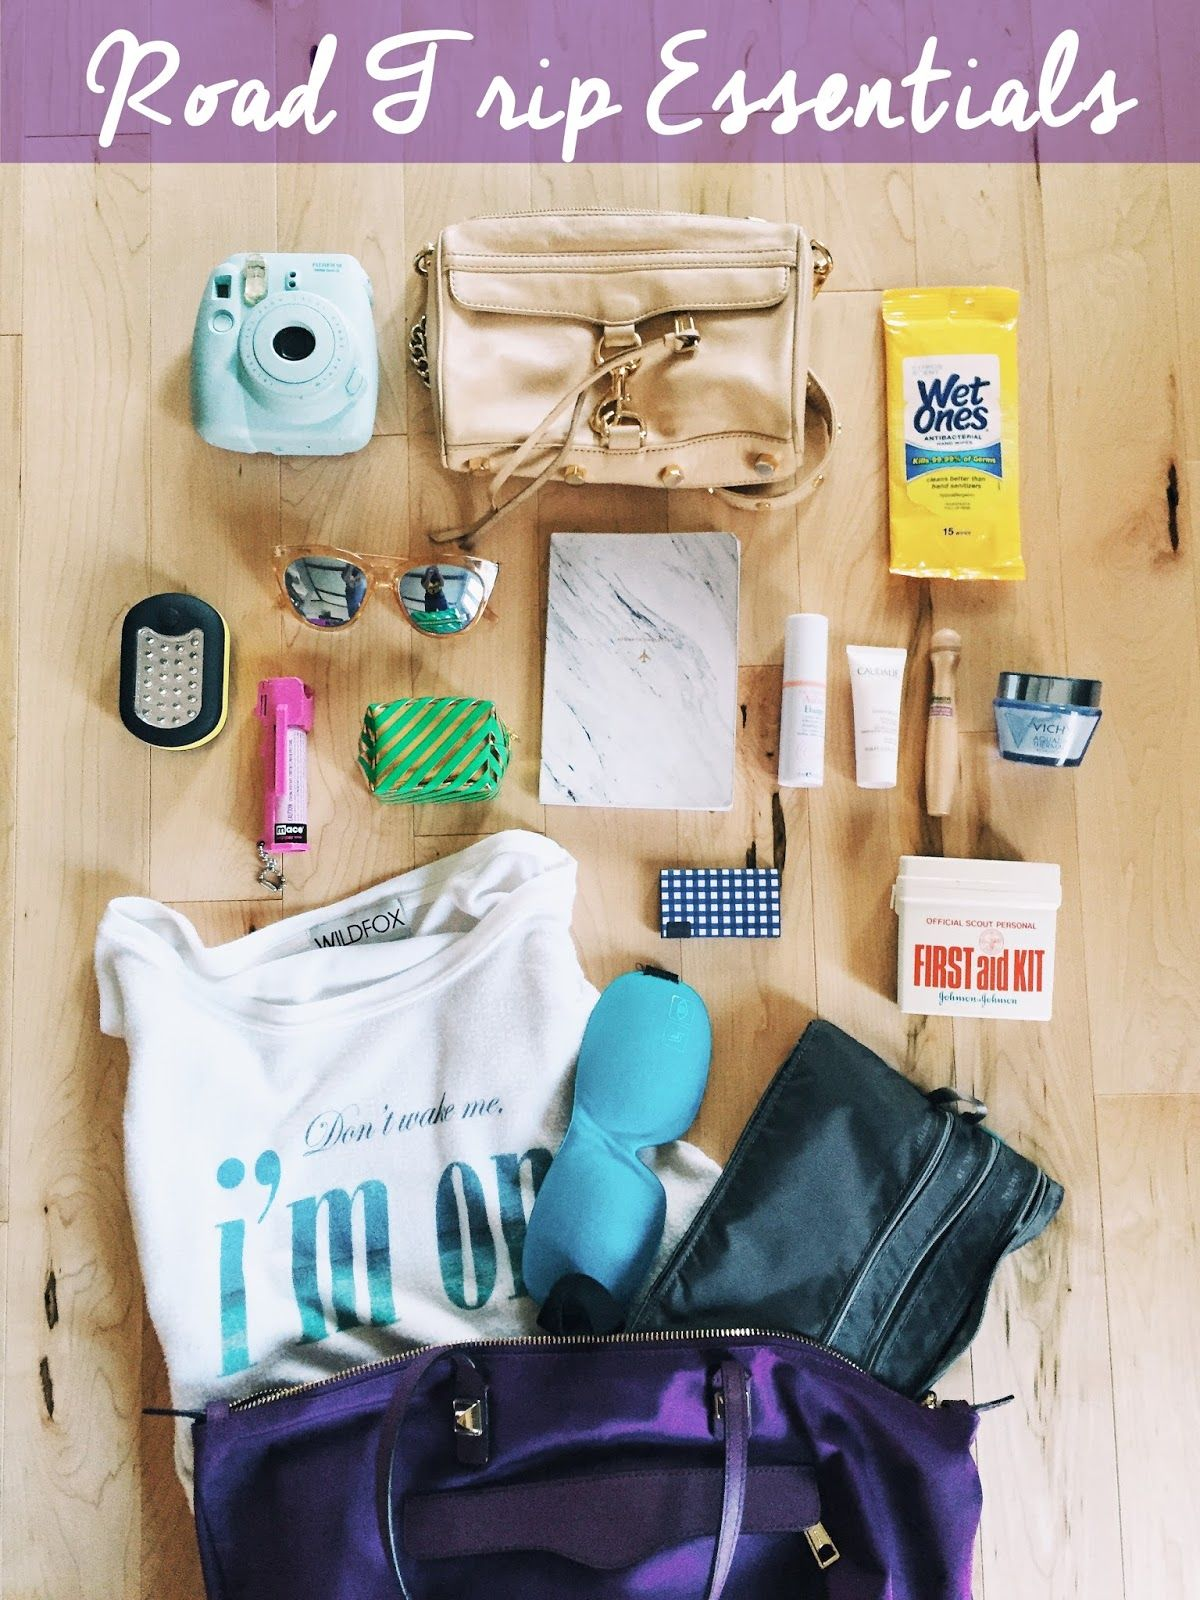 My Road Trip Essentials | Wanderlust | Road trip ...